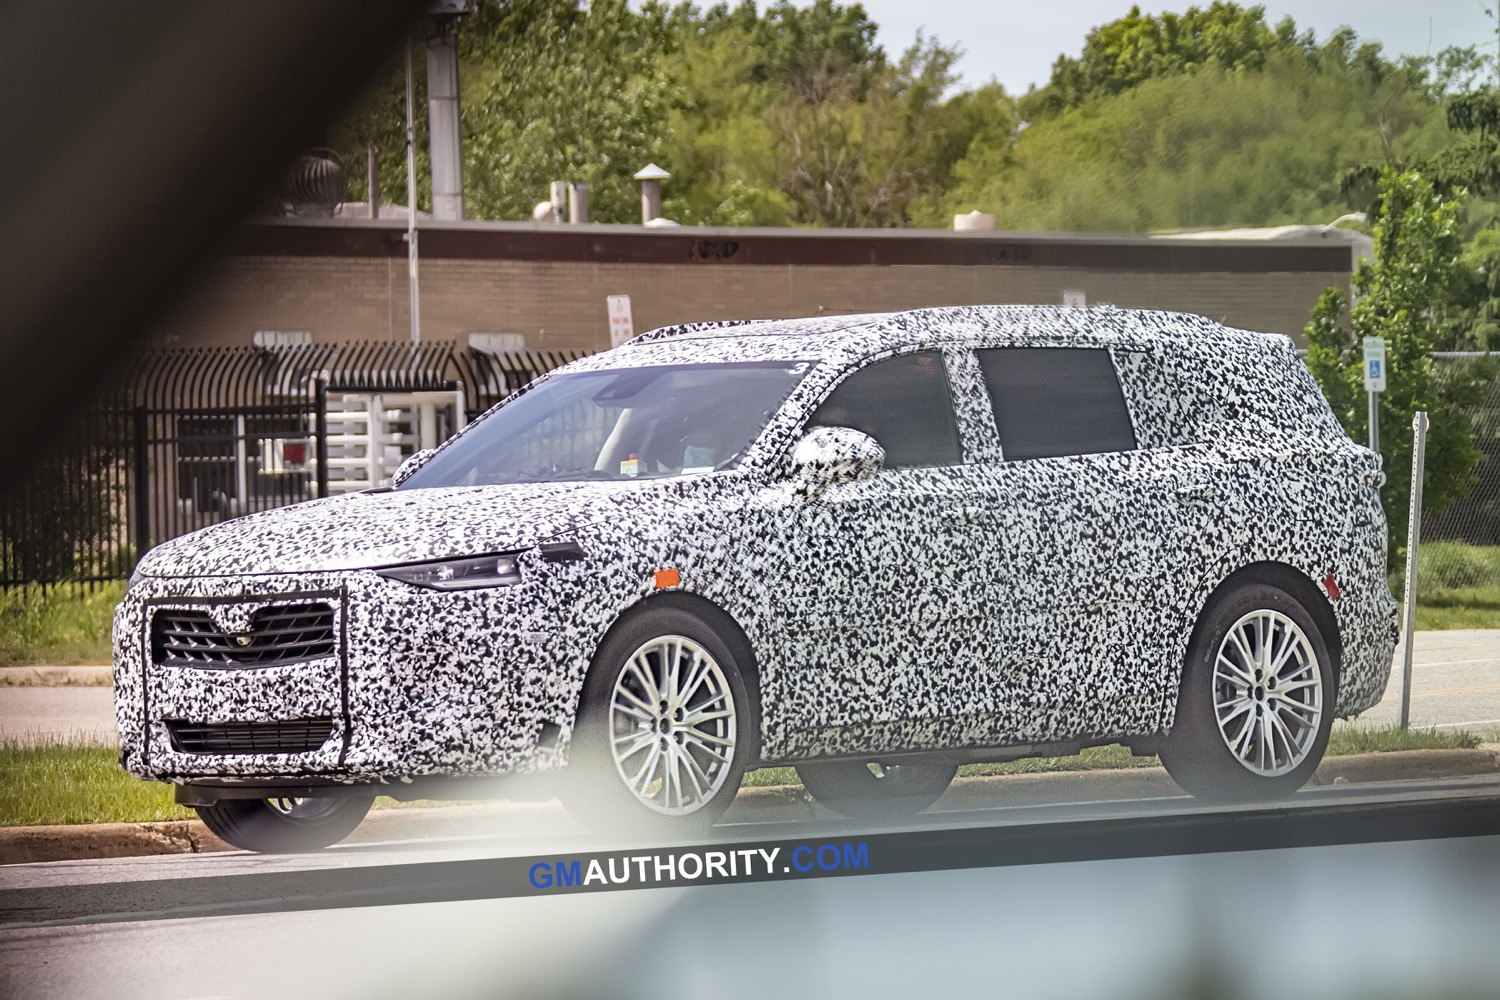 Envision Gx: Upcoming Three-Row Buick Crossover Detailed 2022 Buick Lucerne Transmission, Parts, Recalls